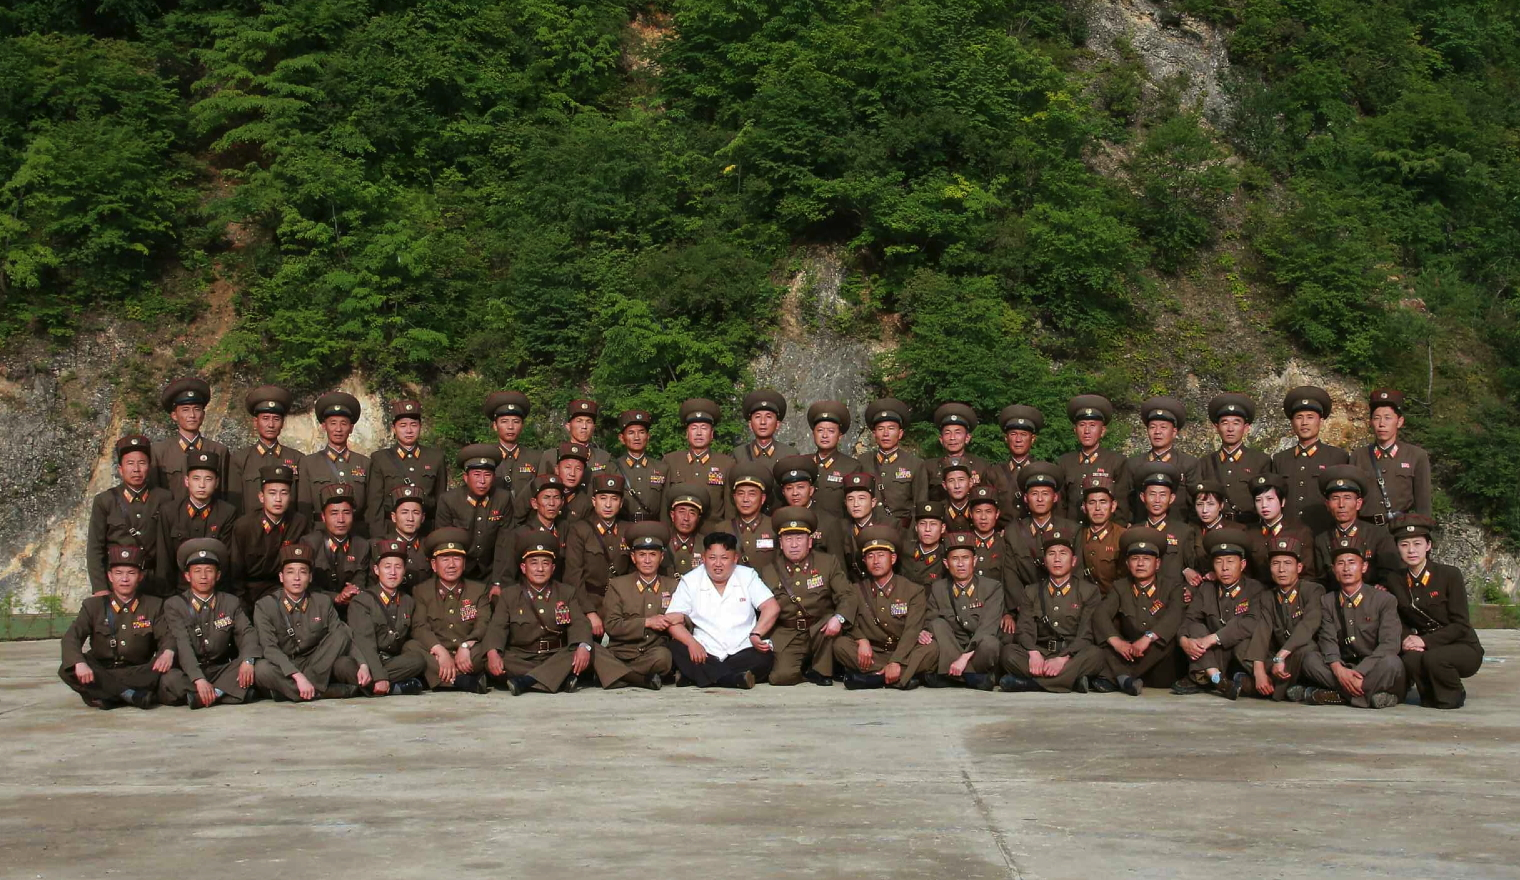 Kim Jong Un poses for a commemorative photo with service members and officers of the KPA Strategic Rocket Force after their participation in a drill on 29 June 2014 (Photo: Rodong Sinmun).